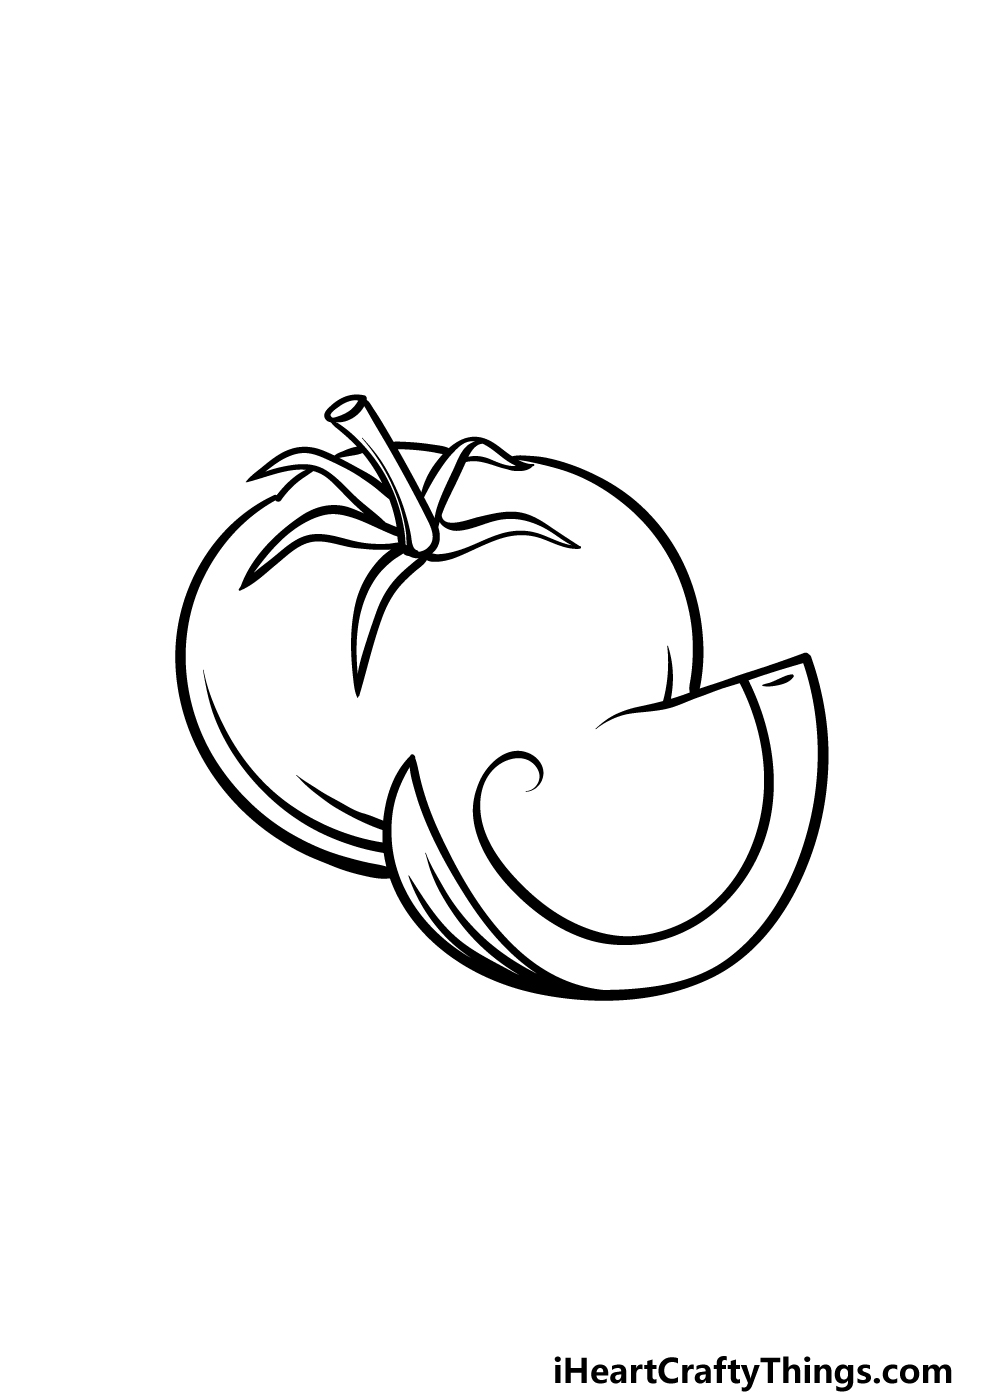 drawing a tomato step 3